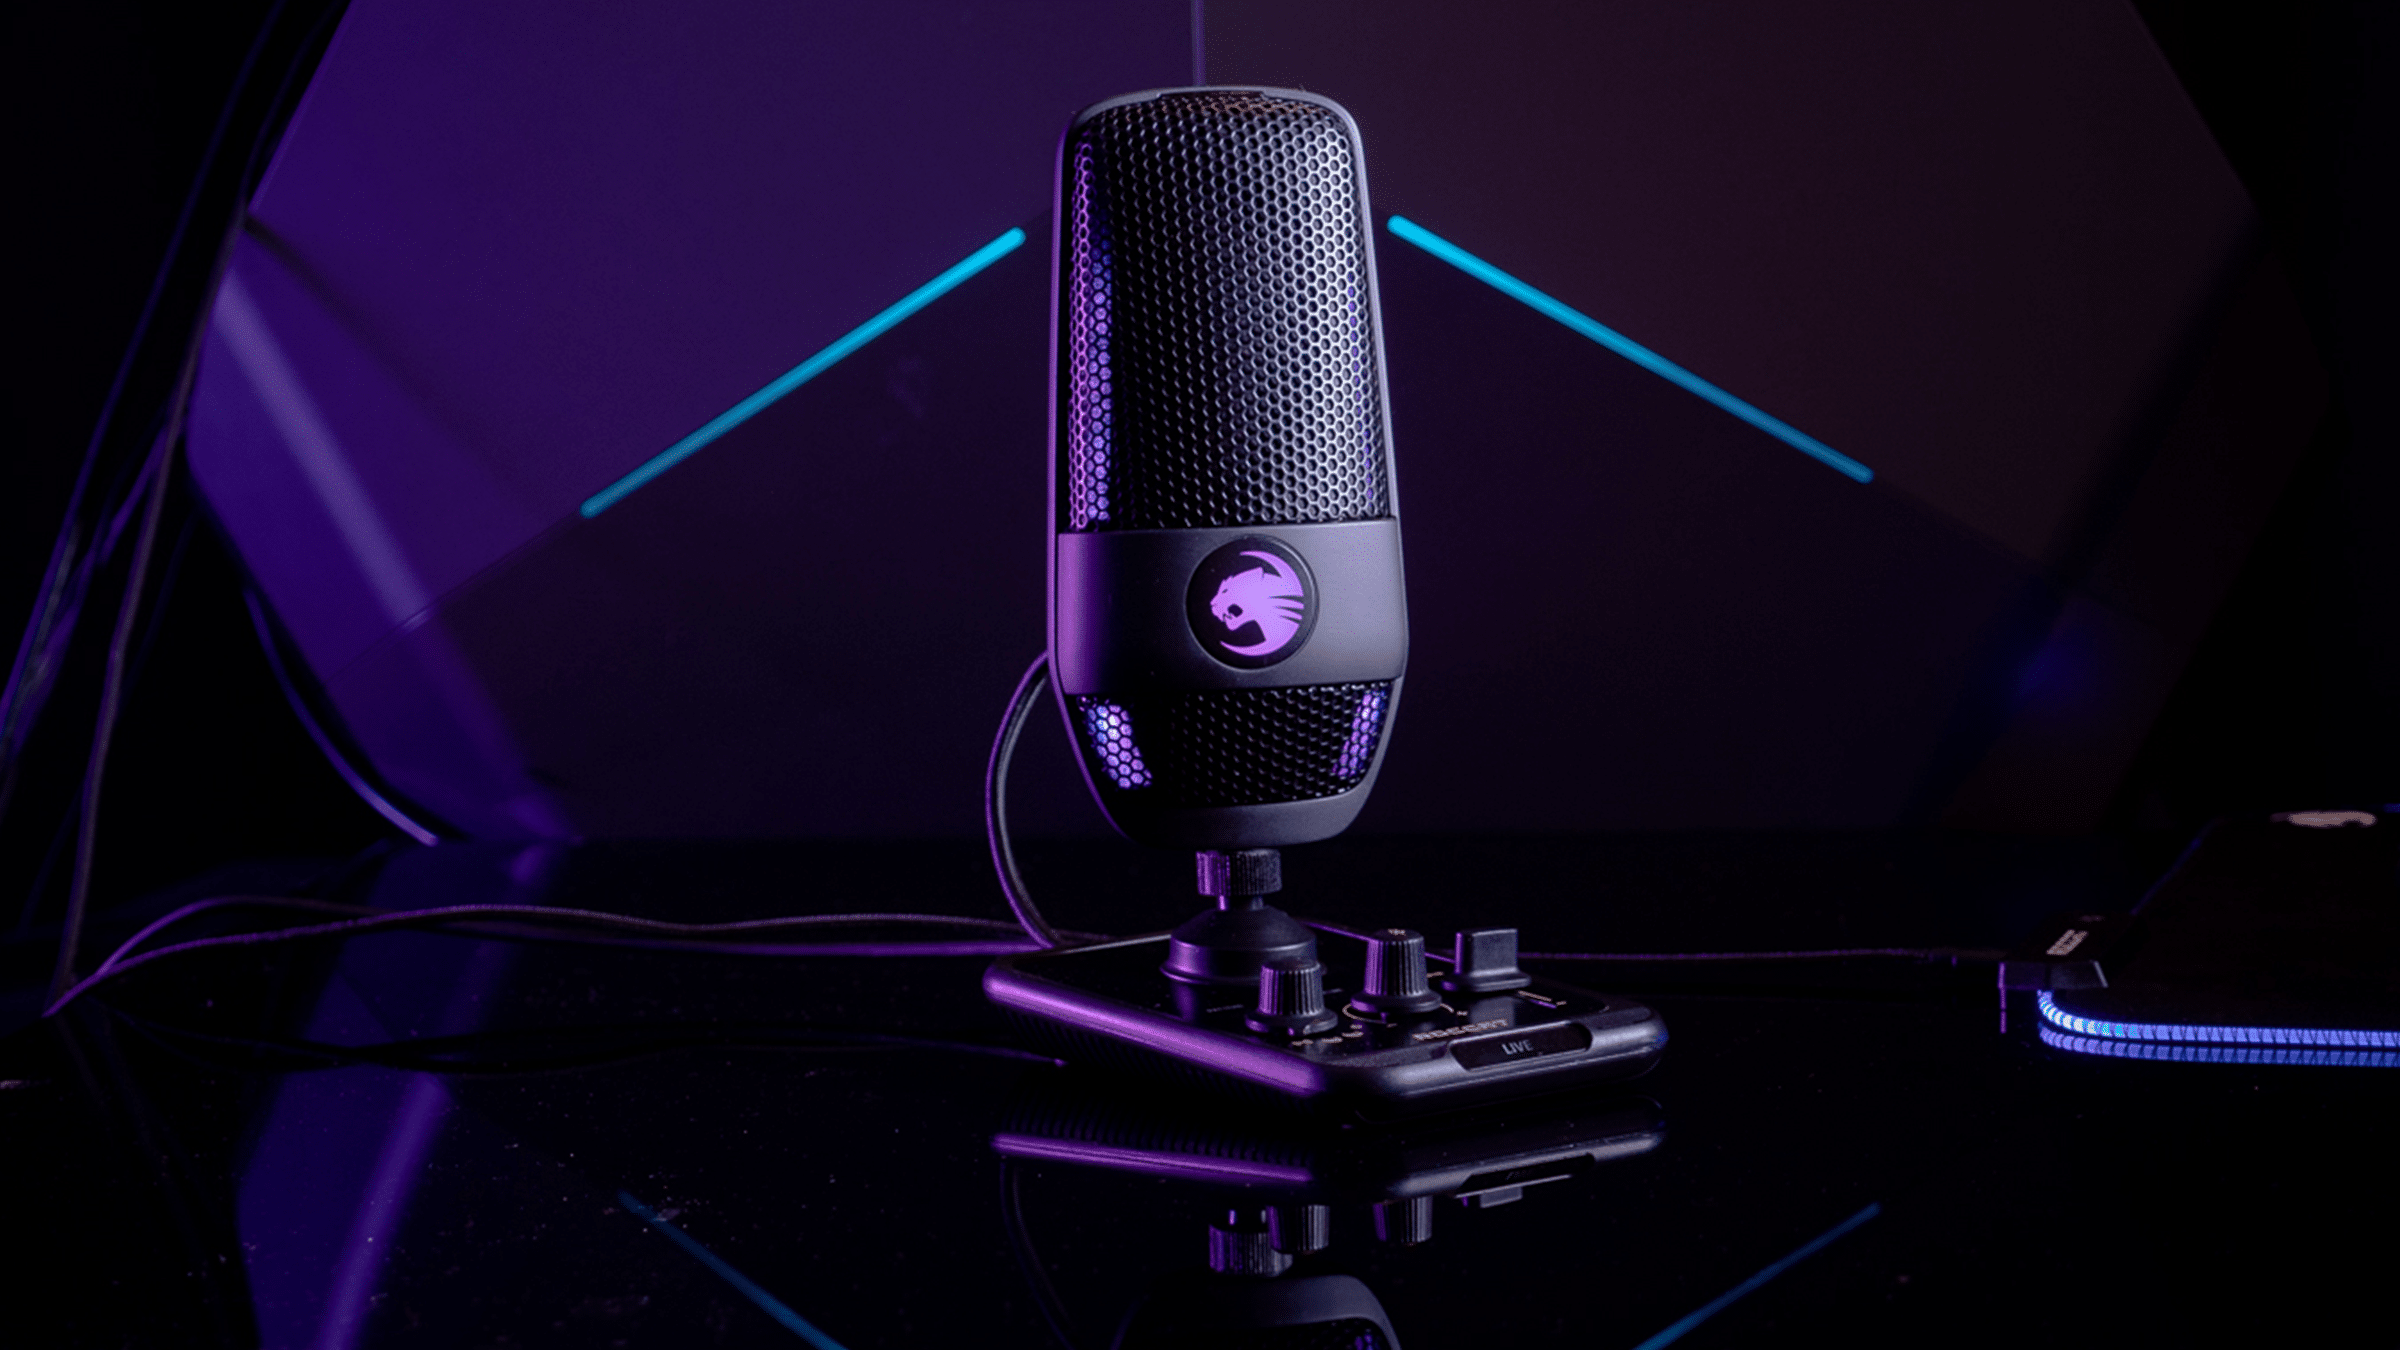 ROCCAT-Torch-Microphone-Review-4.png